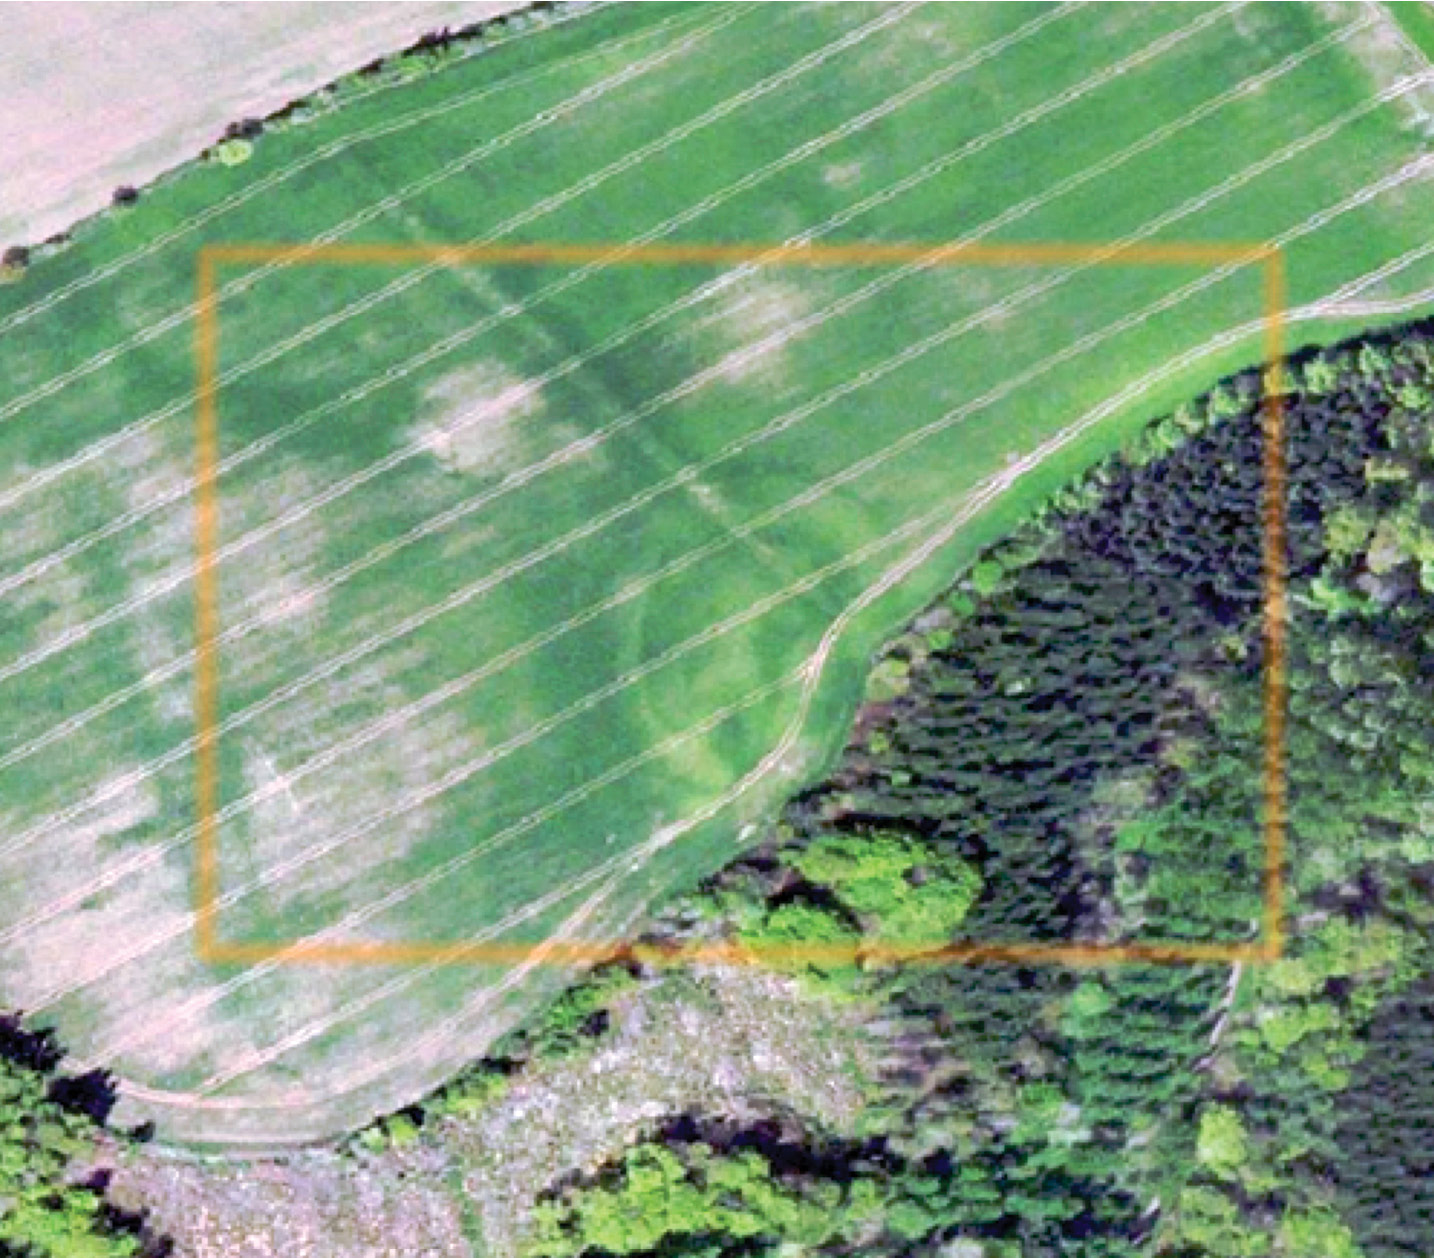 Below This aerial photograph contains hints of what appears to be a previously unknown hillfort in the Lammermuir Hills, identified during the AoF project.